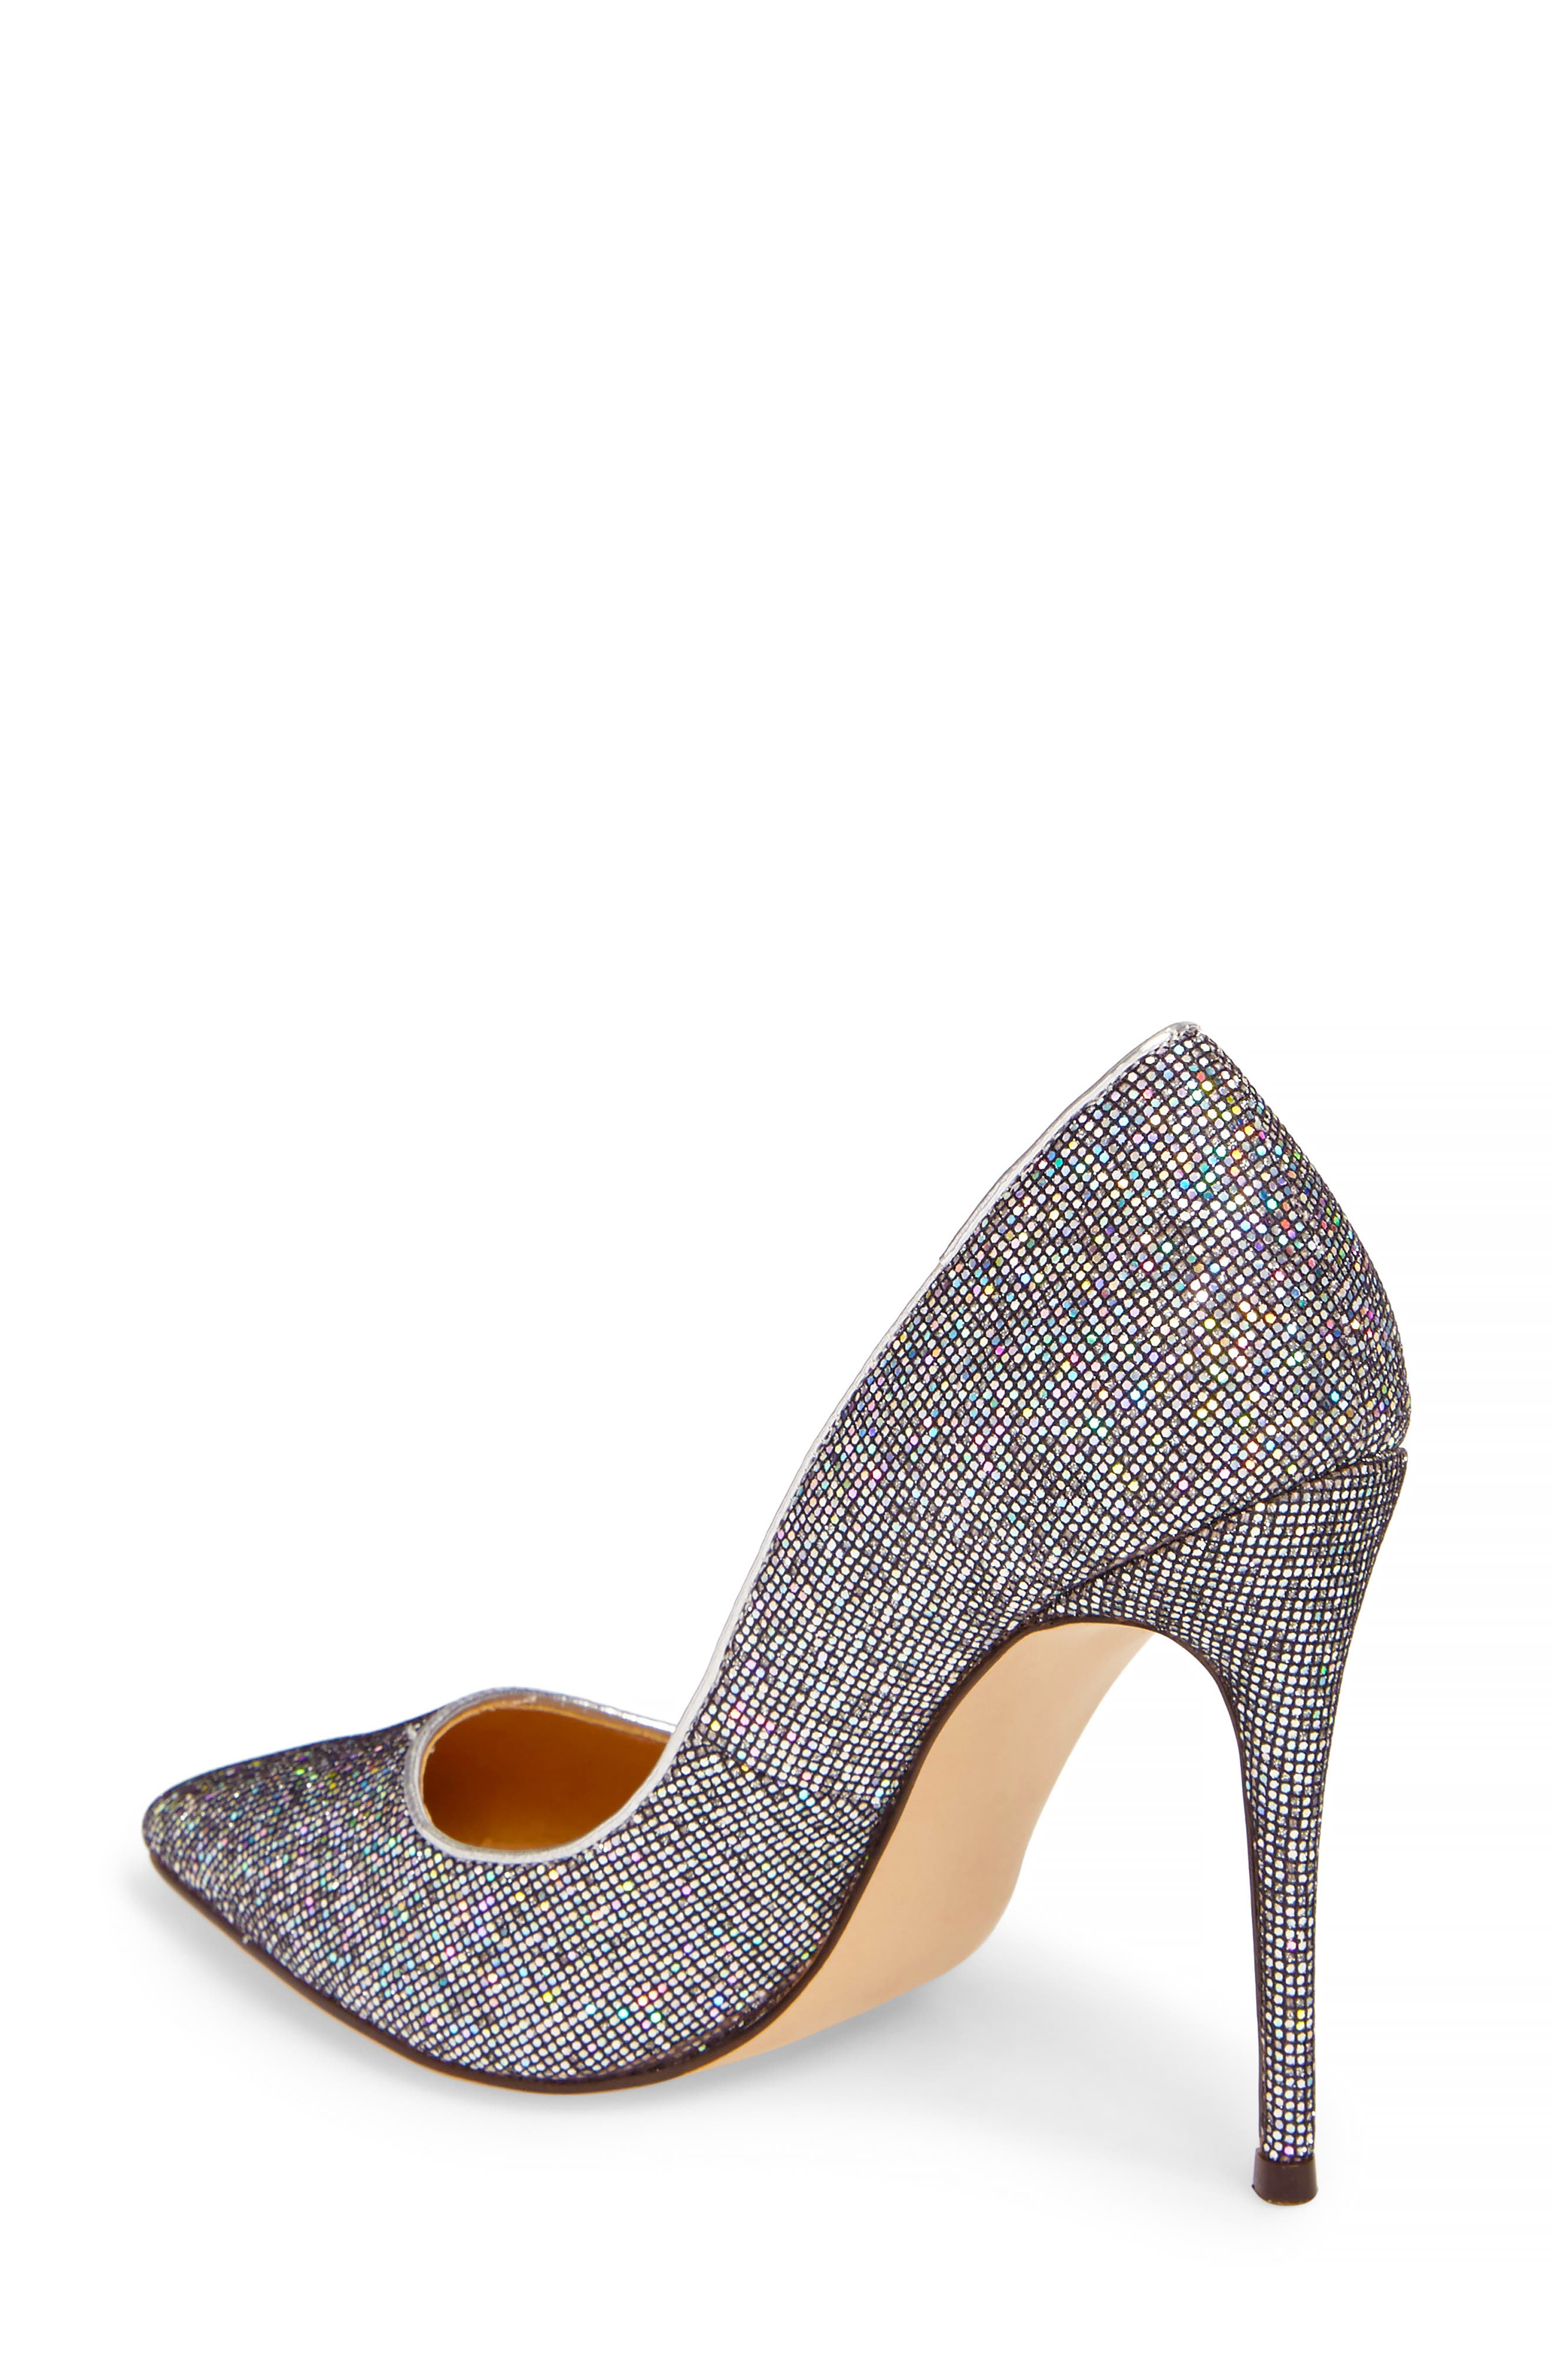 Daisie Pointy-Toe Pump,                             Alternate thumbnail 2, color,                             Black Multi Glitter